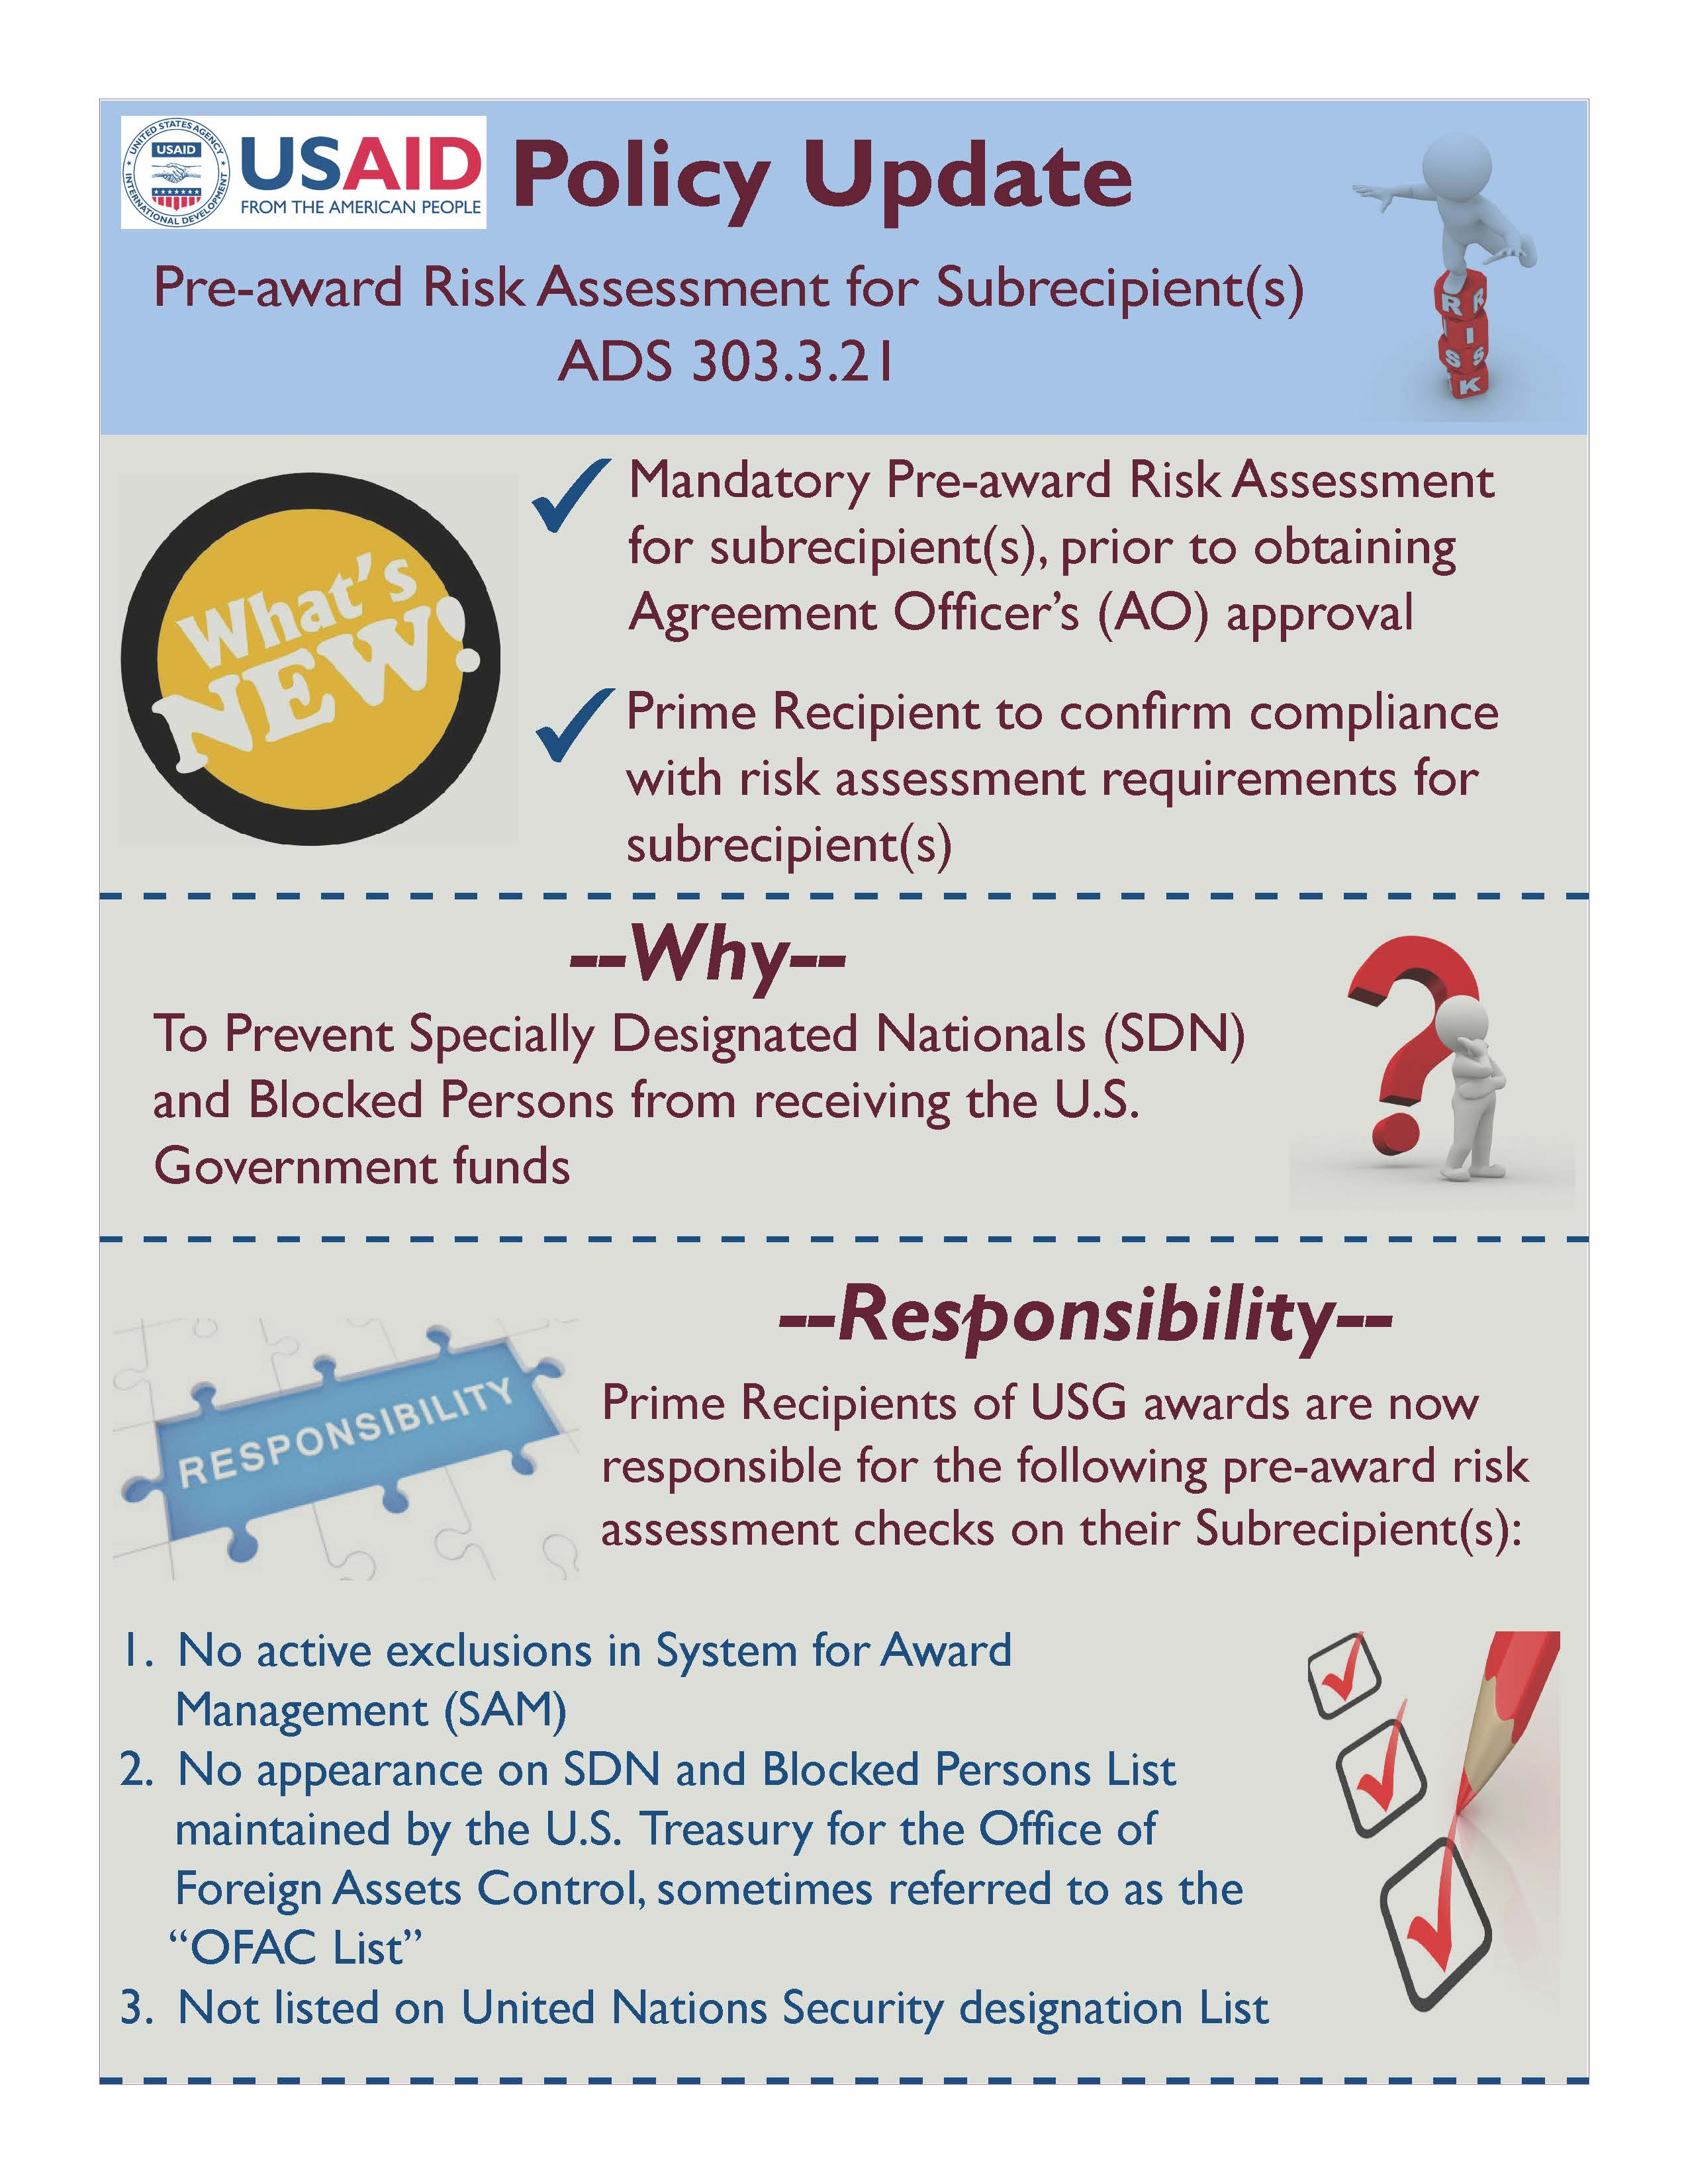 Infographic: Pre-award Risk Assessment for Sub recipient(s) ADS 303.3.21